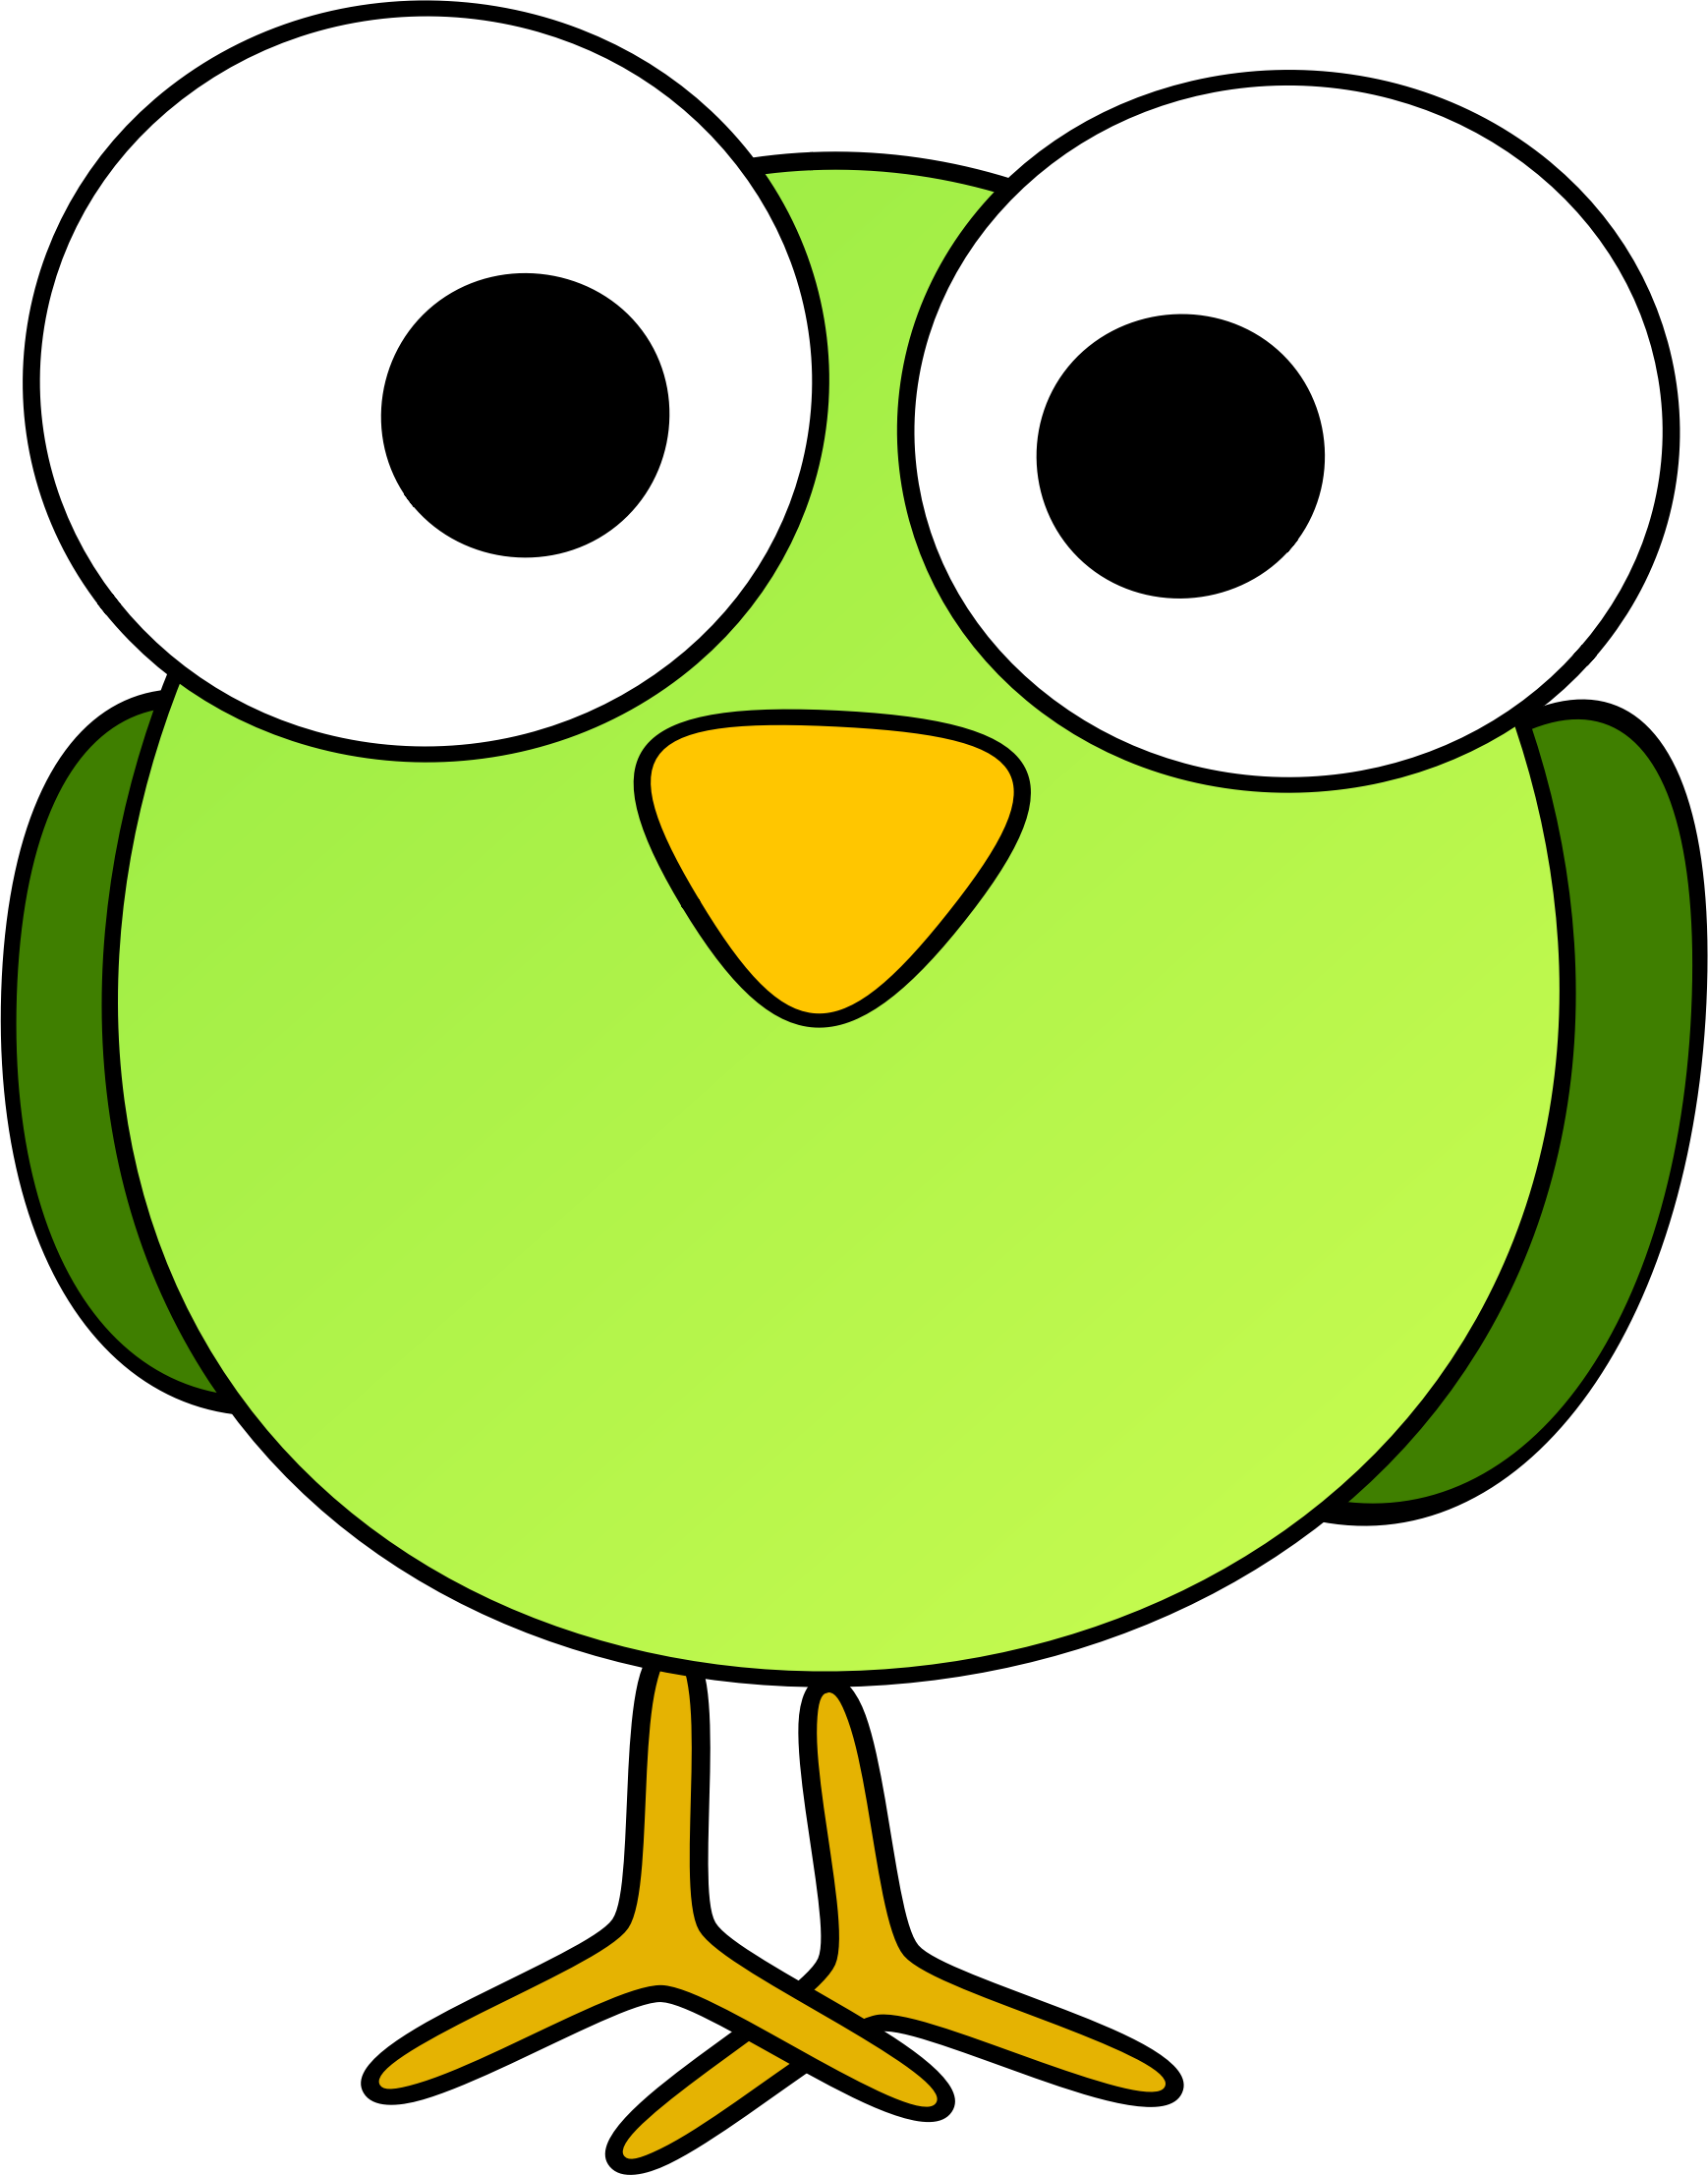 Bird Clipart Image Funny Looking Little Cartoon Bird With A Big